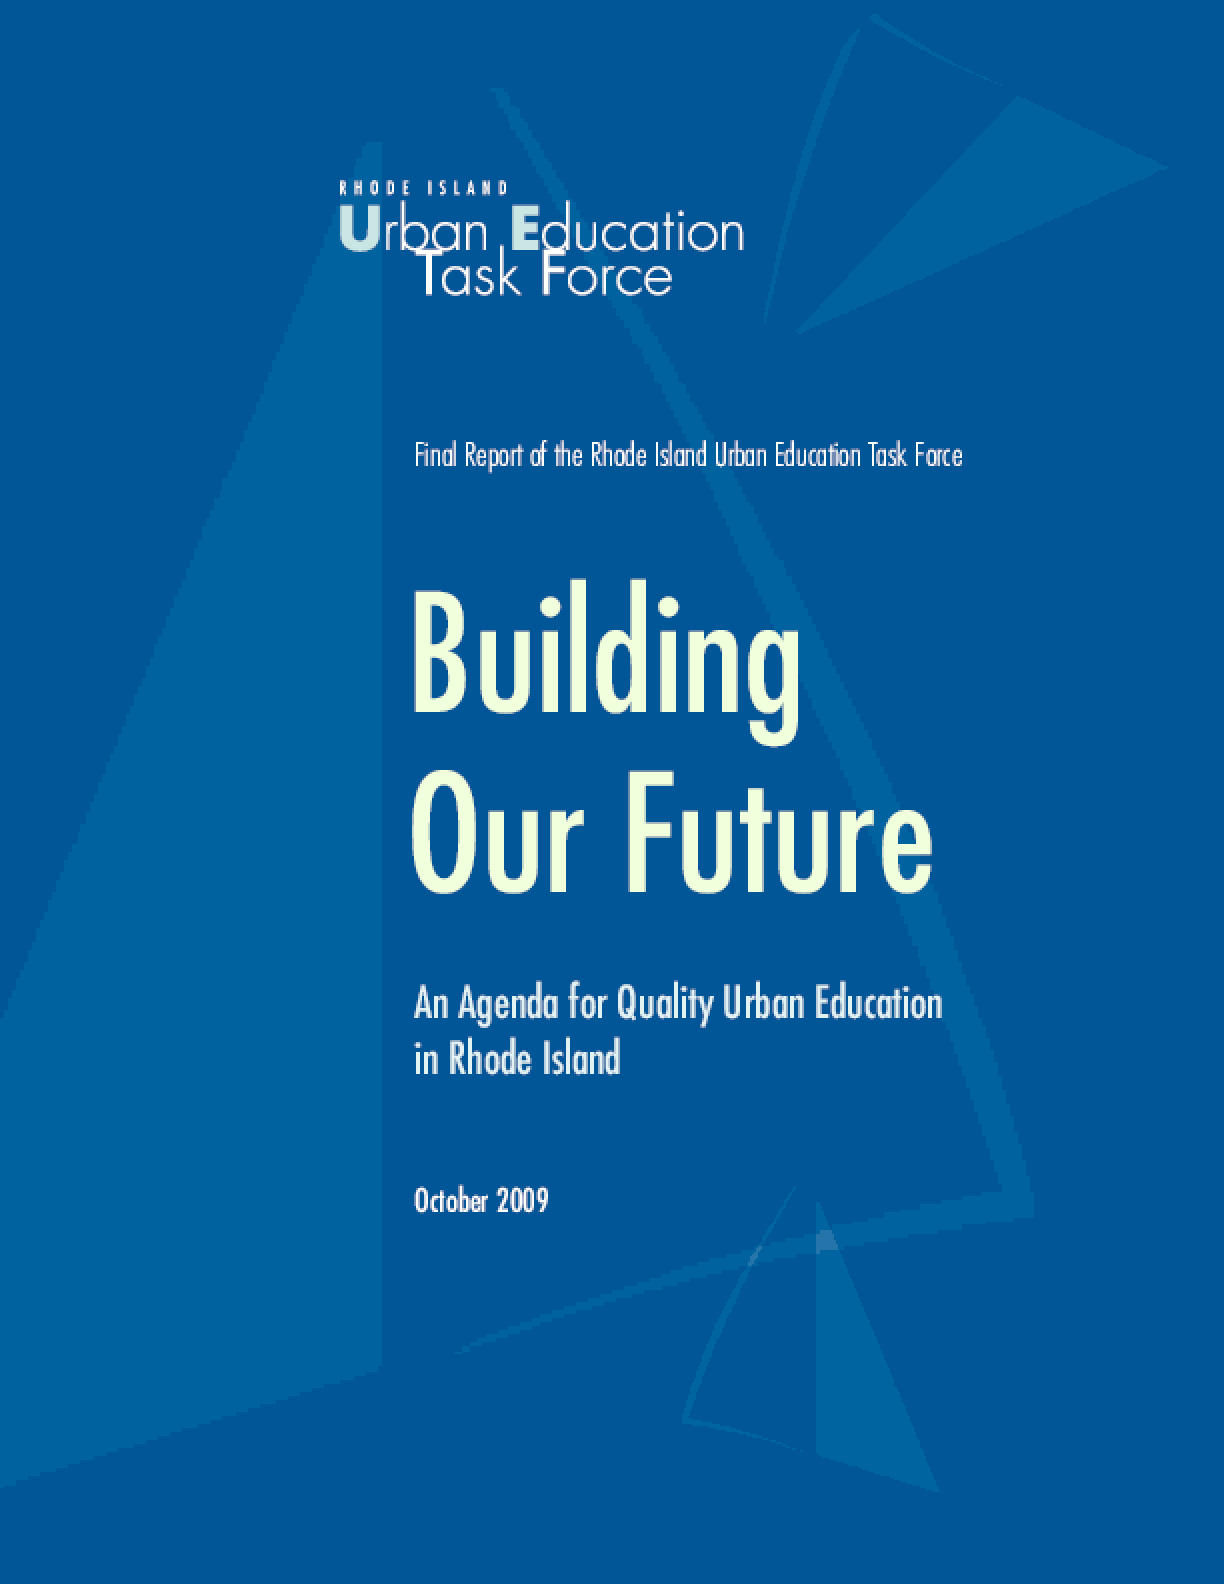 Building Our Future: An Agenda for Quality Urban Education in Rhode Island